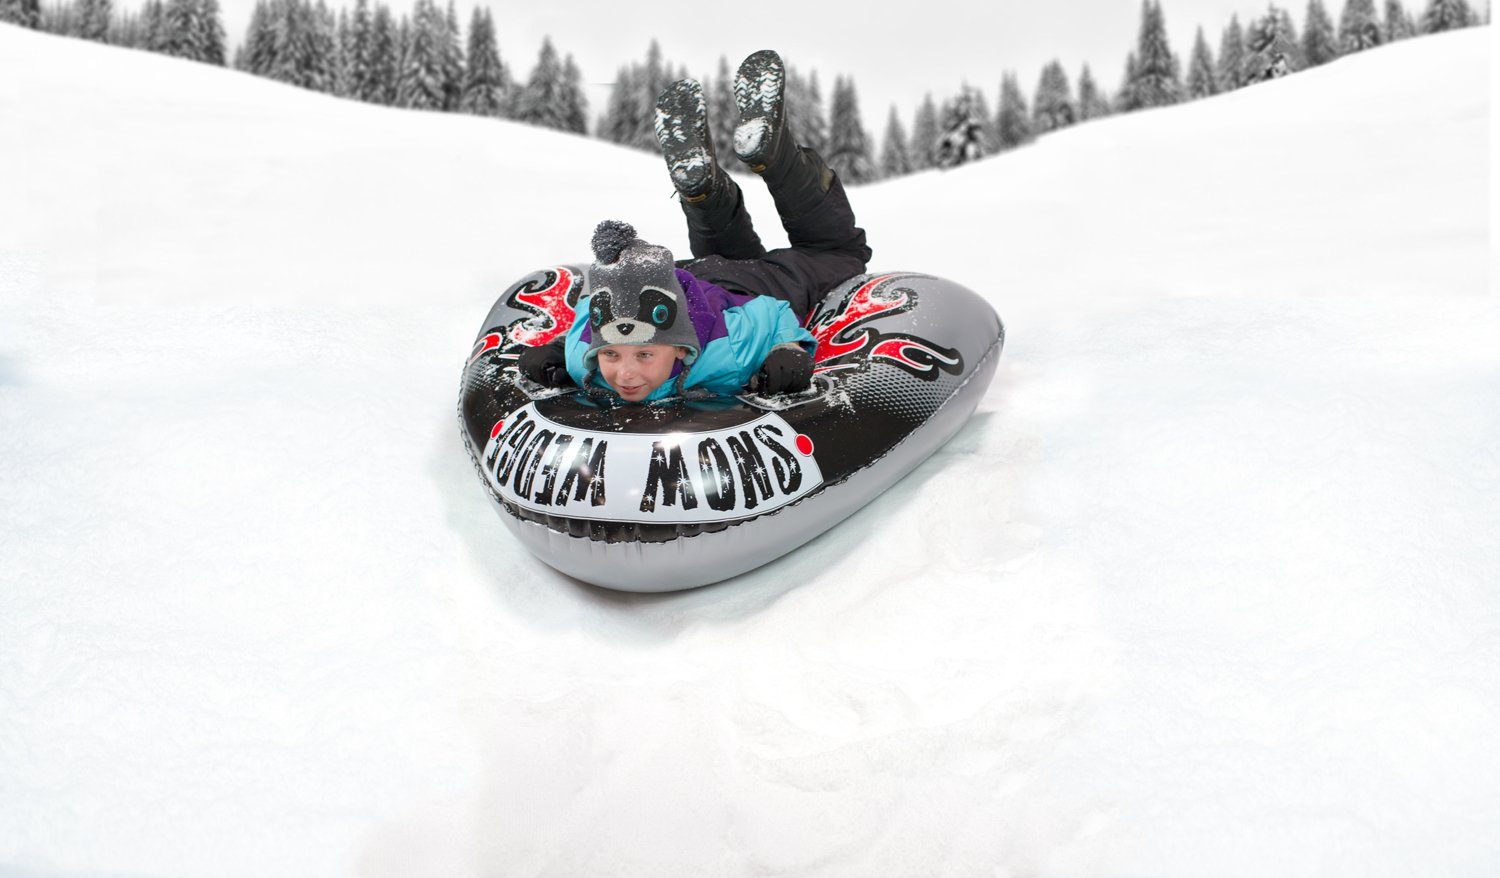 Poolmaster Snow Wedge Inflatable Saucer for Snow/Water by Poolmaster (Image #2)